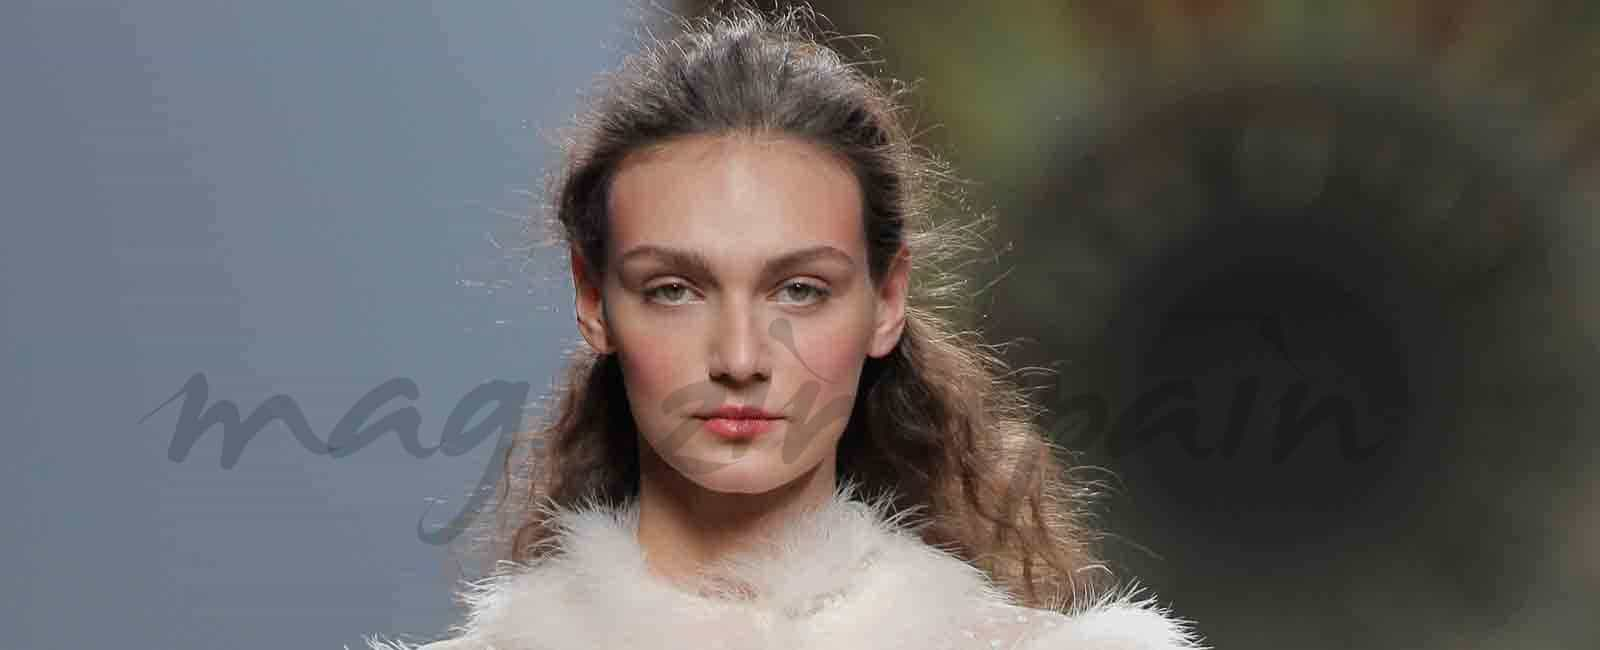 Mercedes Benz Fashion Week: Teresa Helbig Otoño-Invierno 2017/18